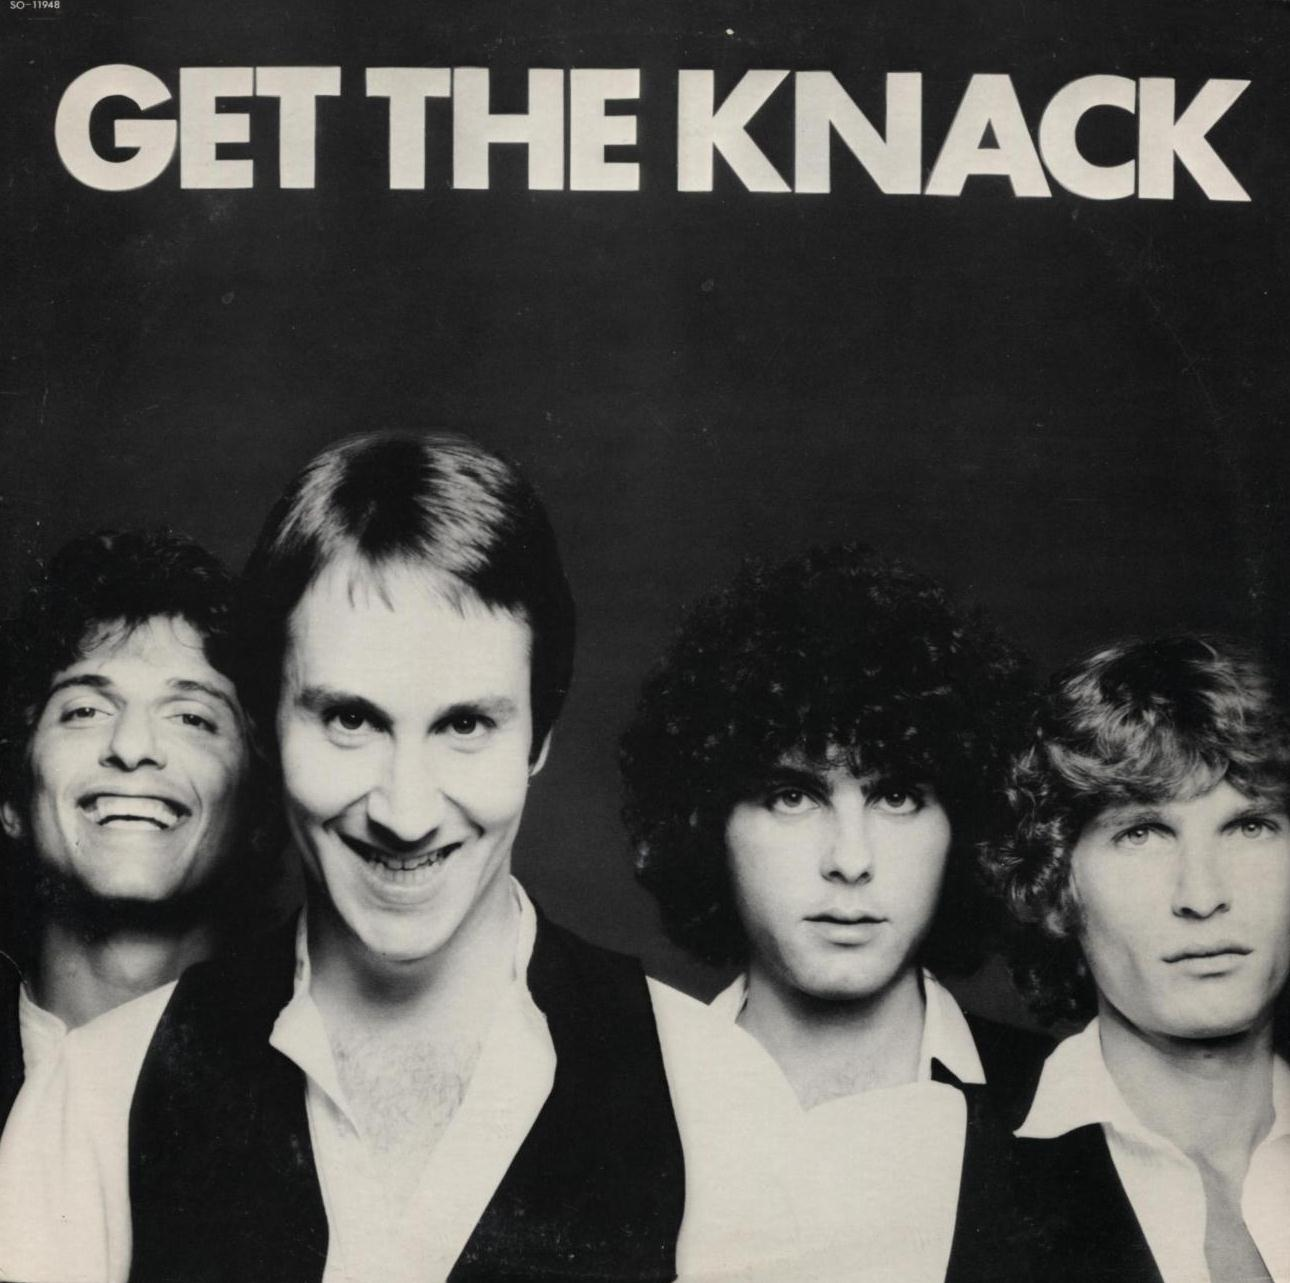 ... for one song, and probably this band's most famous song: My Sharona